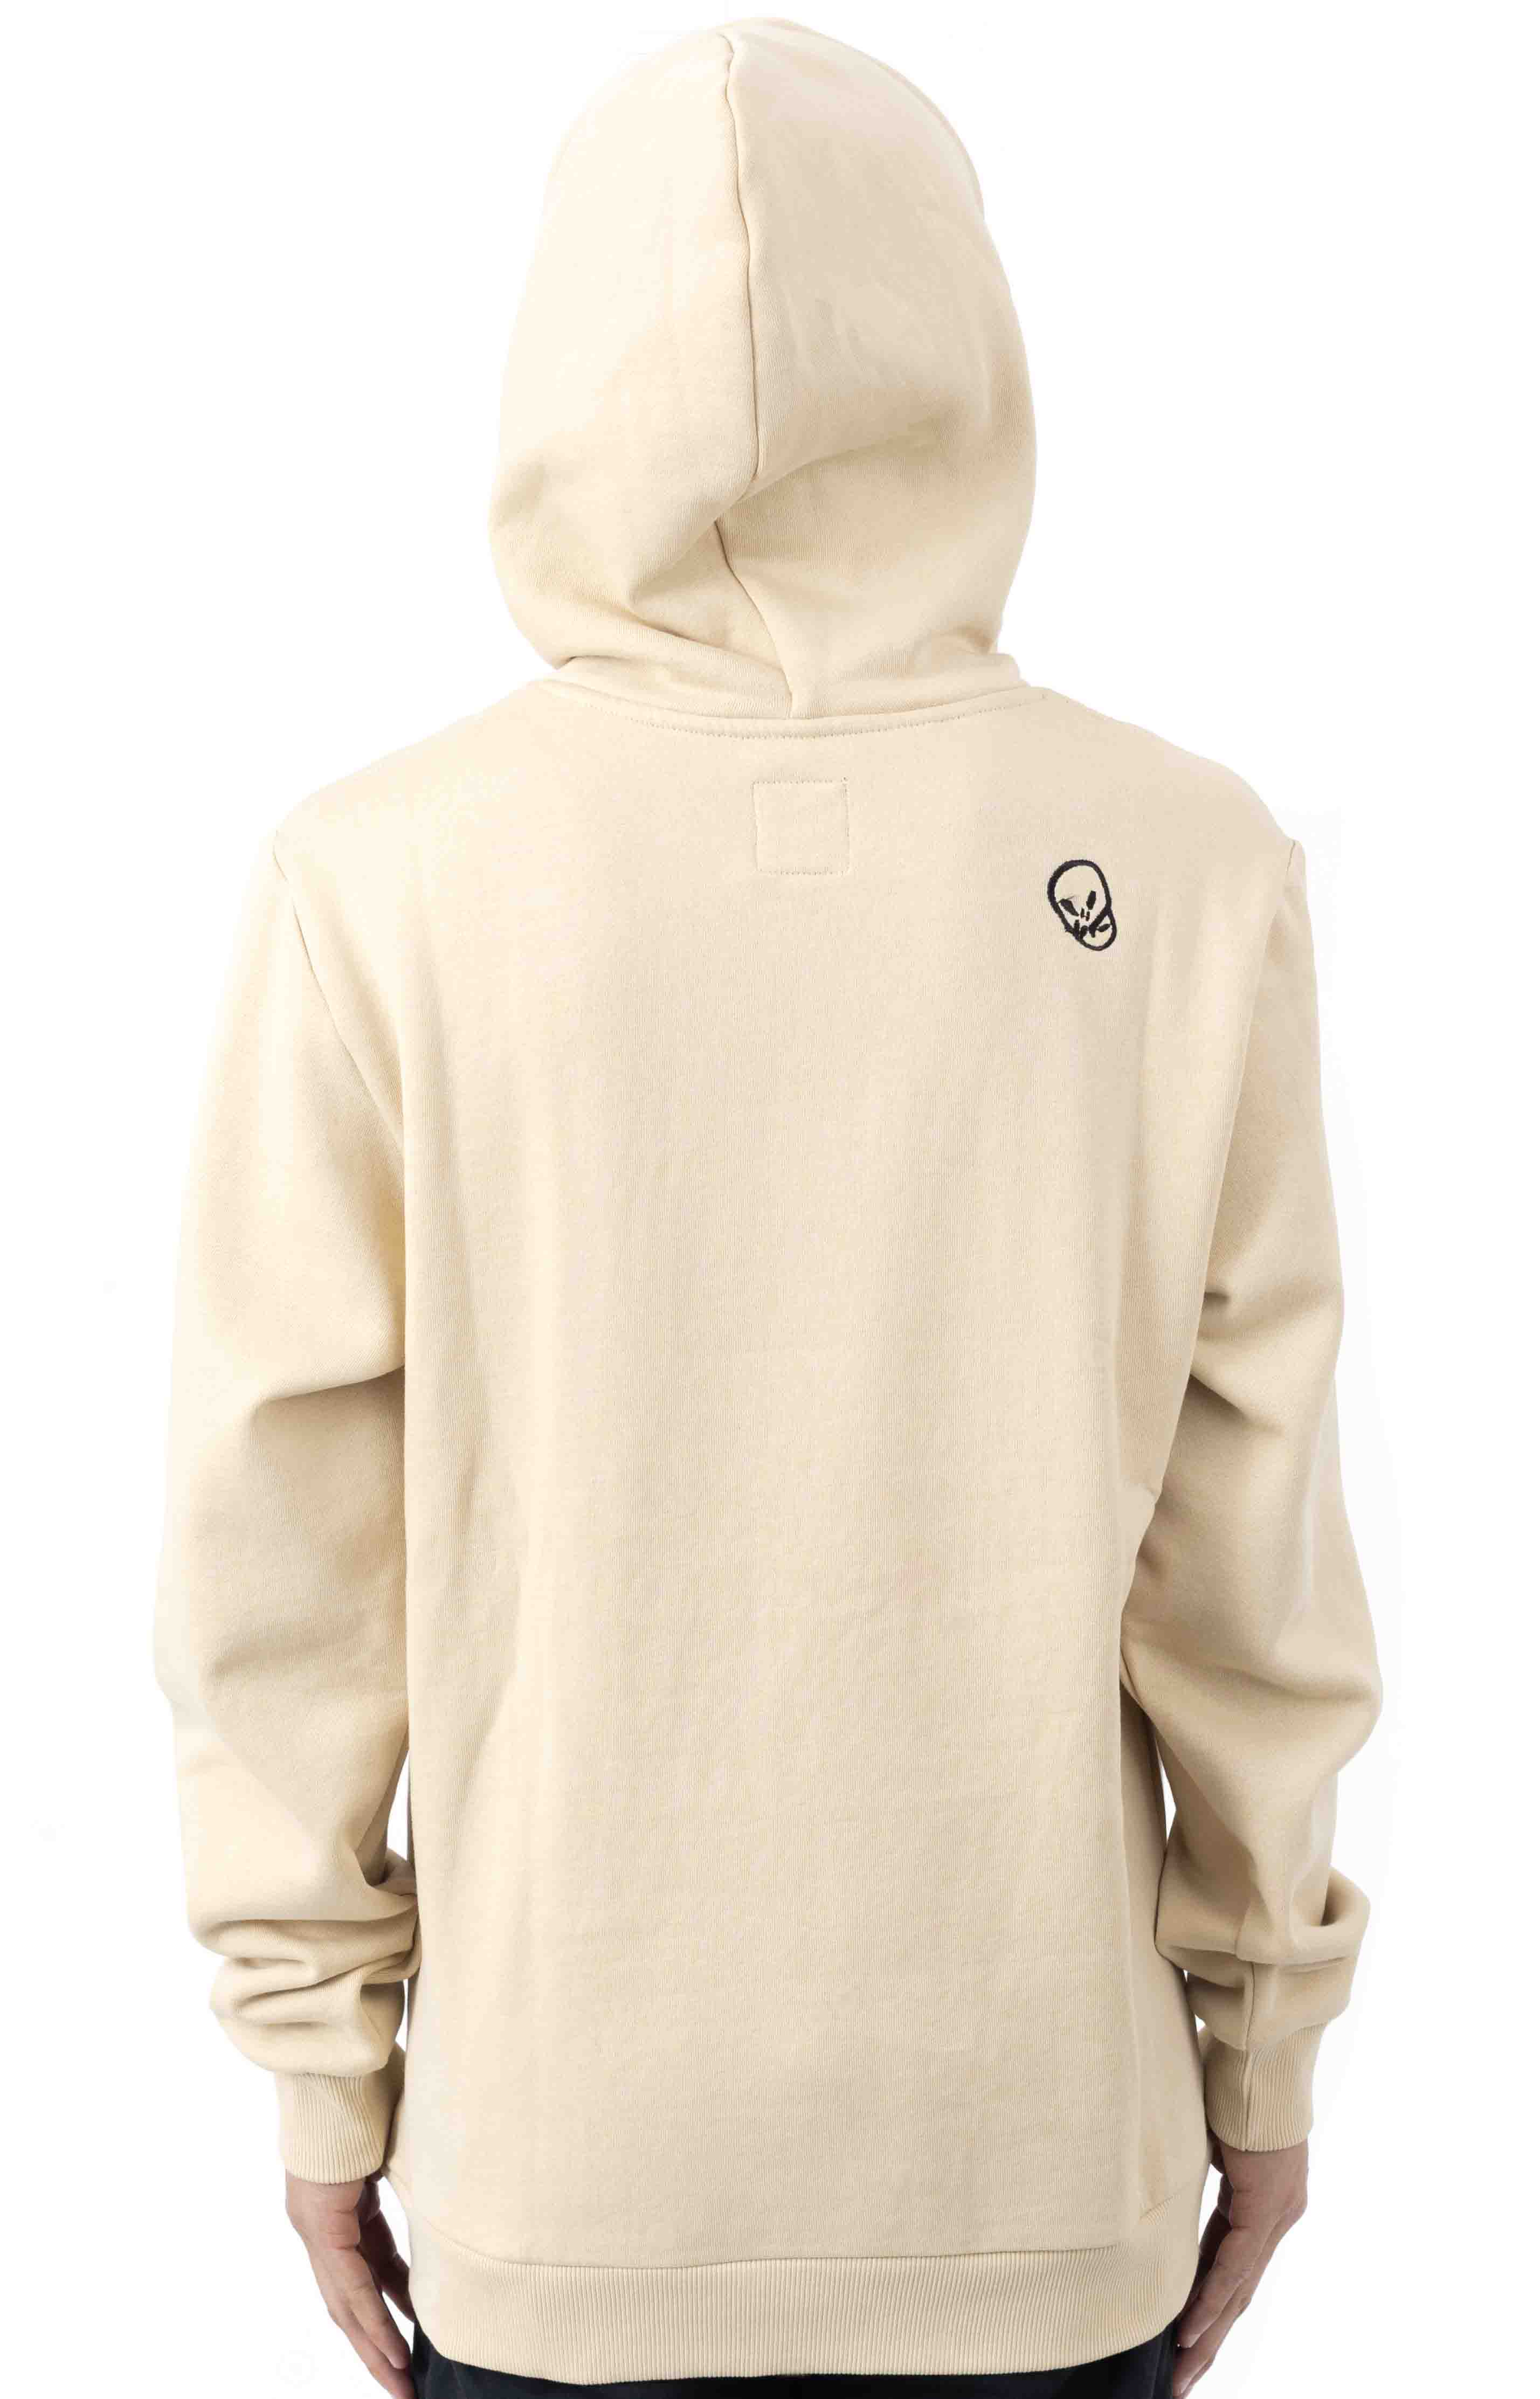 BB Fly Now Pullover Hoodie - Gravel 3